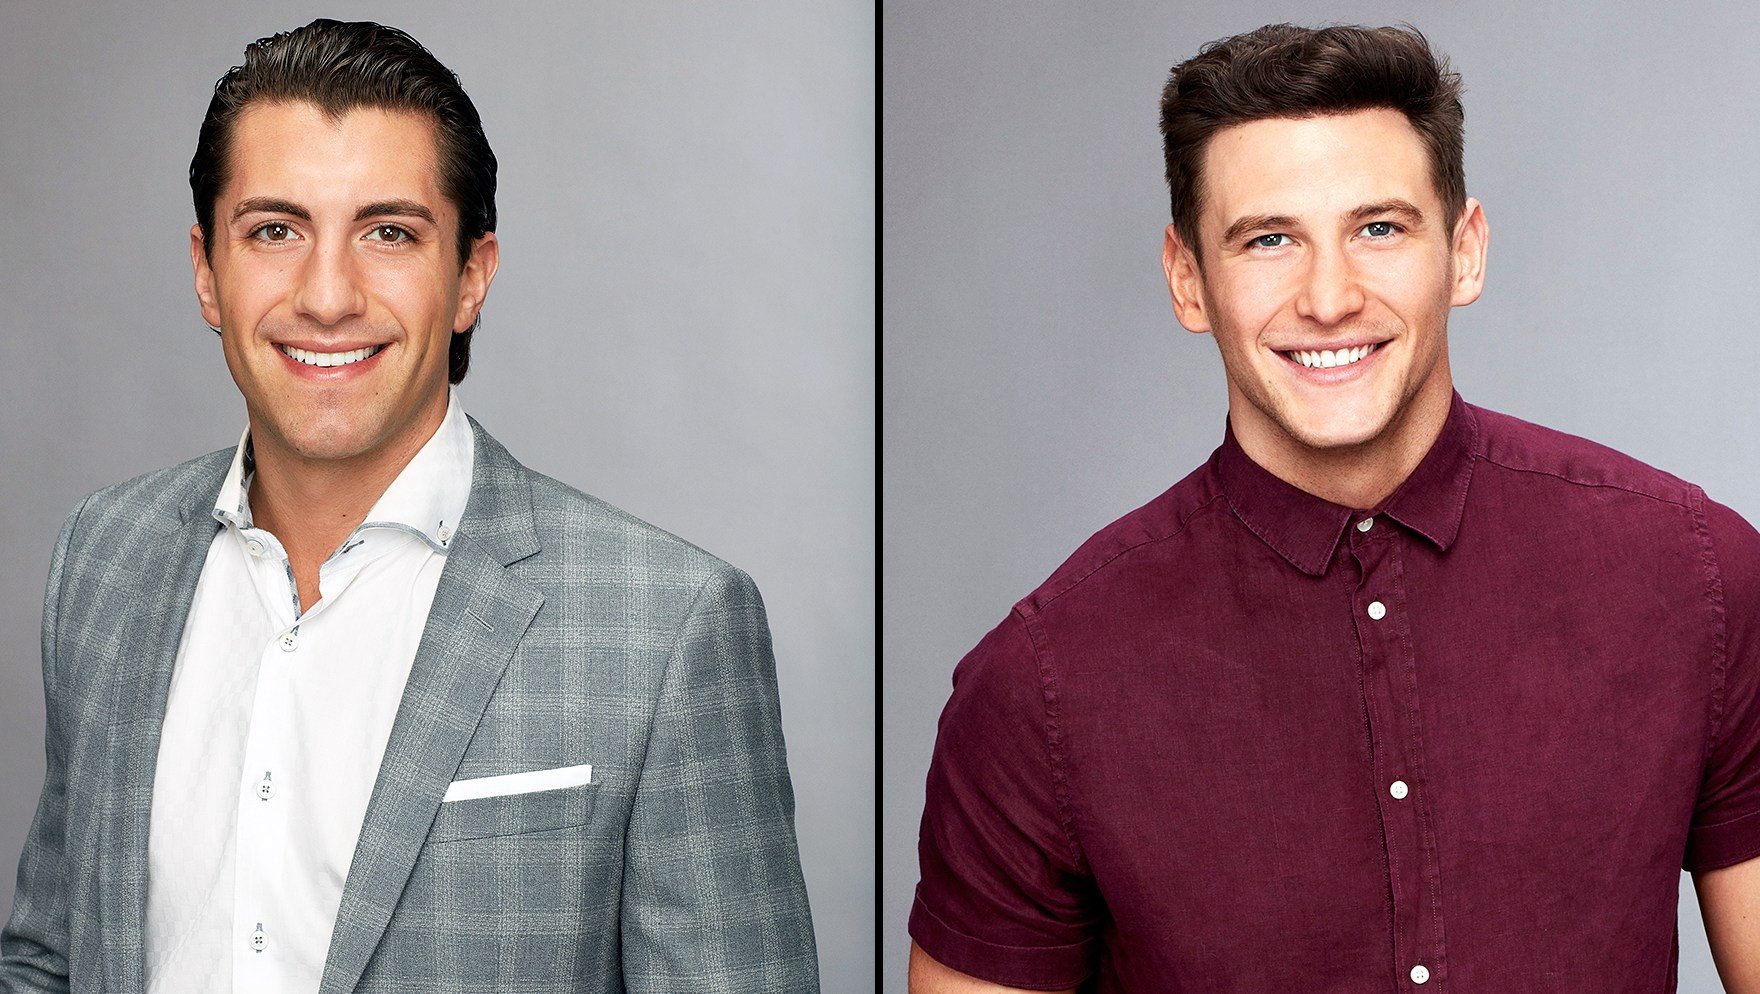 Next Bachelor Poll Jason Tartick Blake Horstmann Ben Higgins Colton Underwood